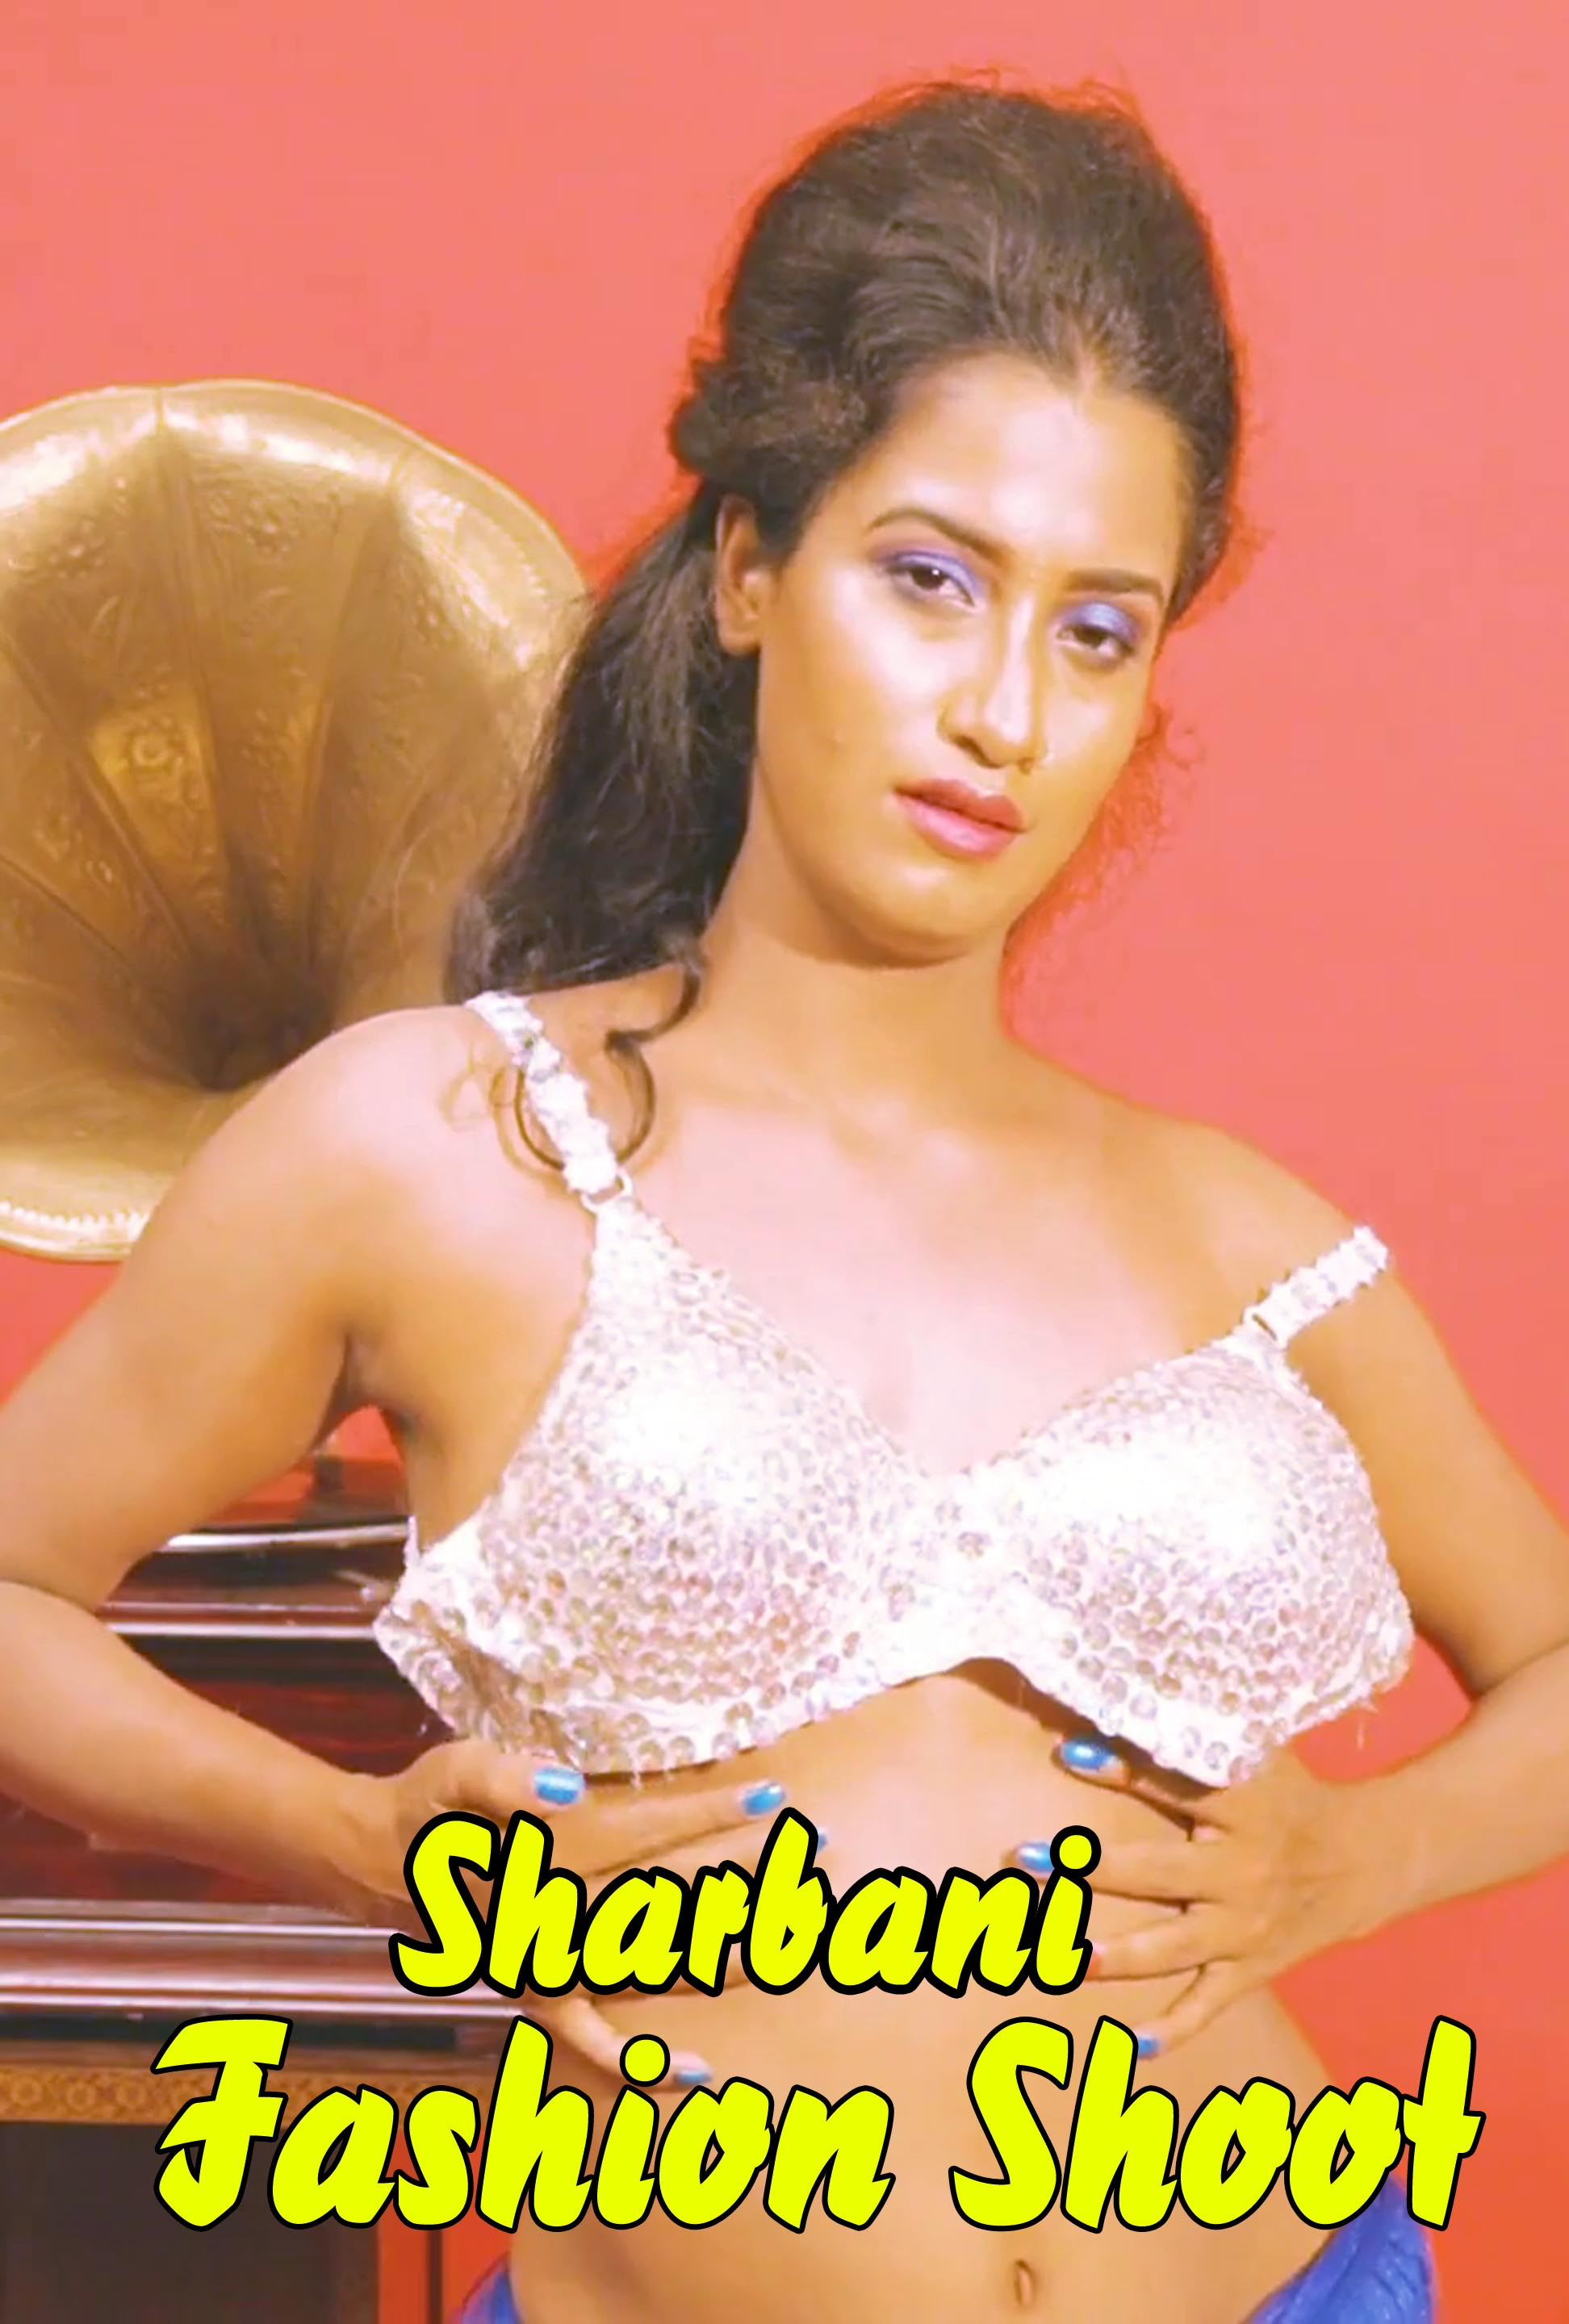 Sharbani Fashion Shoot 2020 Hindi Nuefliks Originals Video 720p HDRip 60MB Free Download